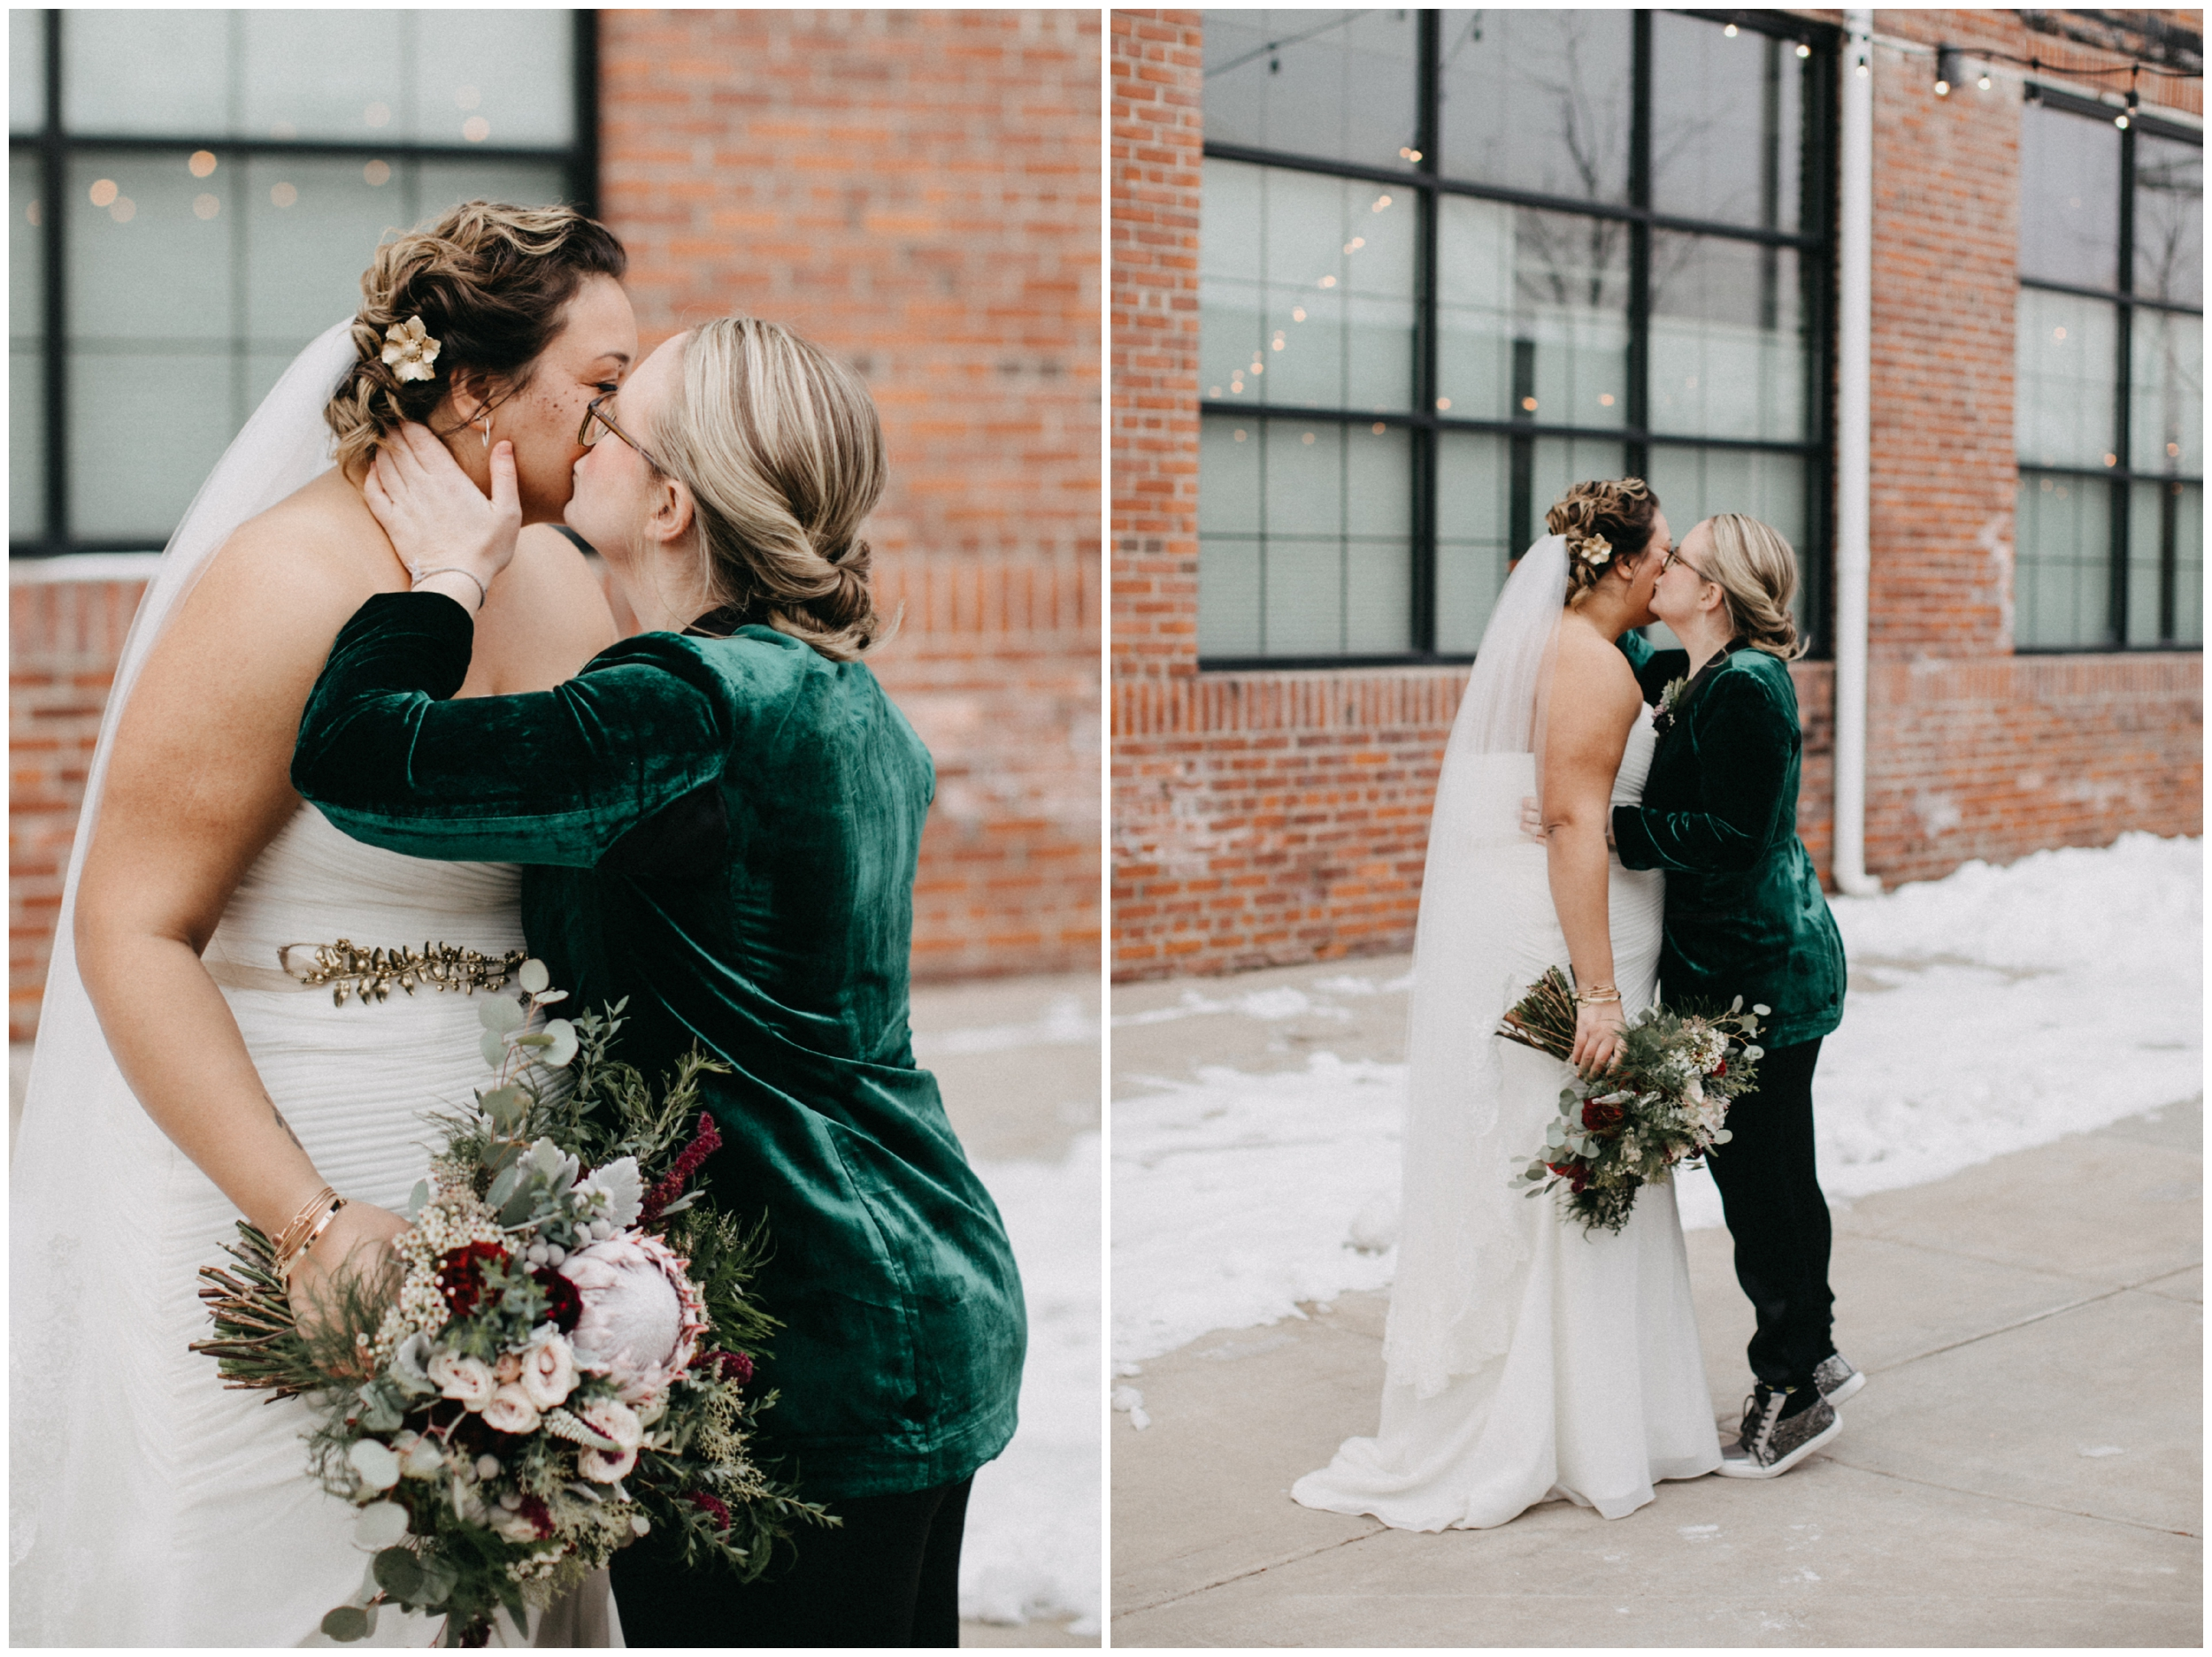 Outdoor winter wedding at Paikka in St Paul